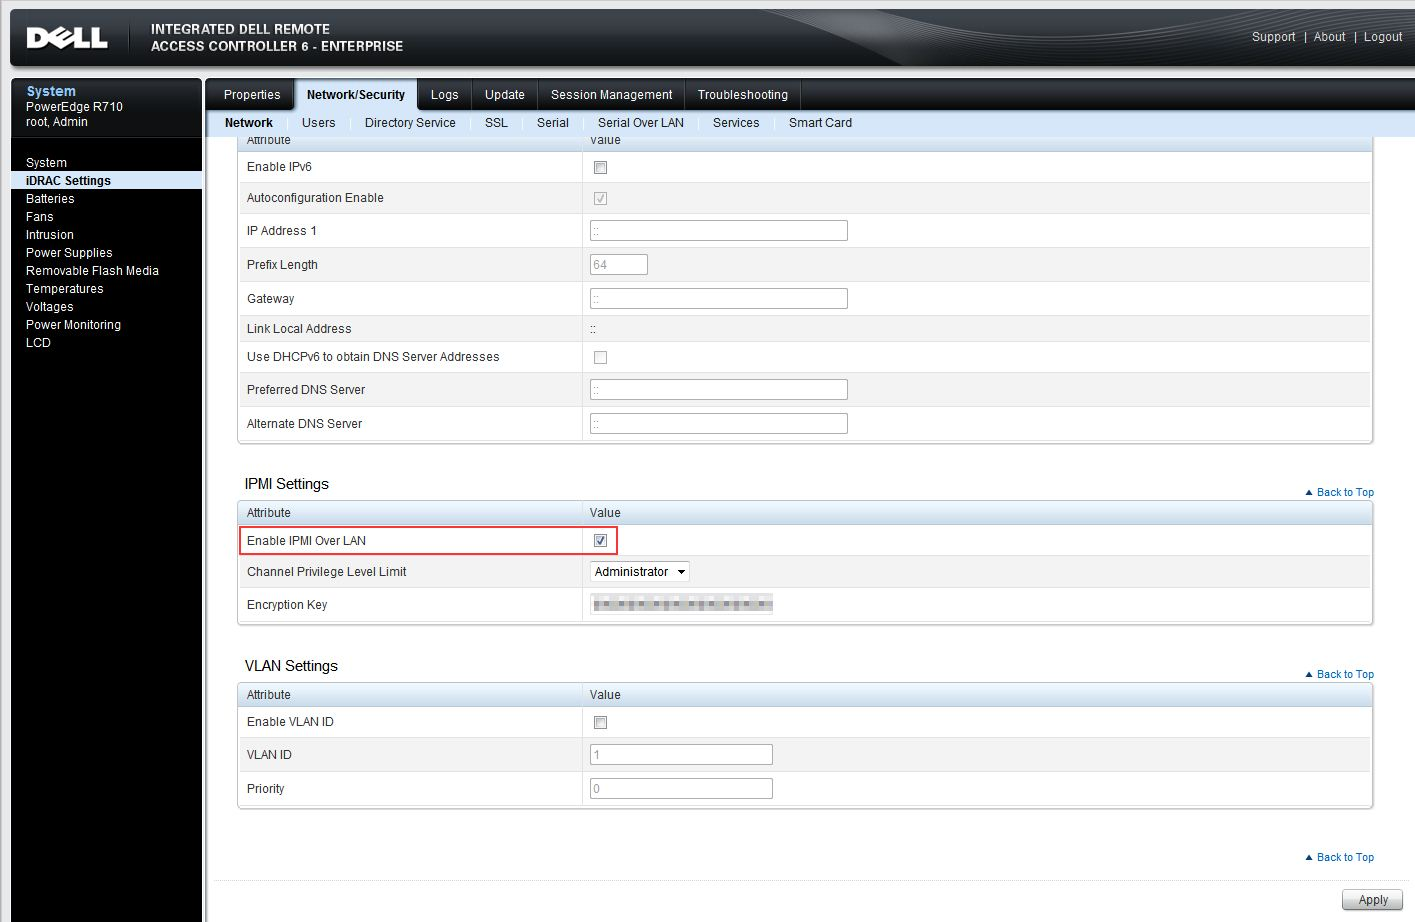 Configure Dell DRAC For OOB In System Center Virtual Machine Manager